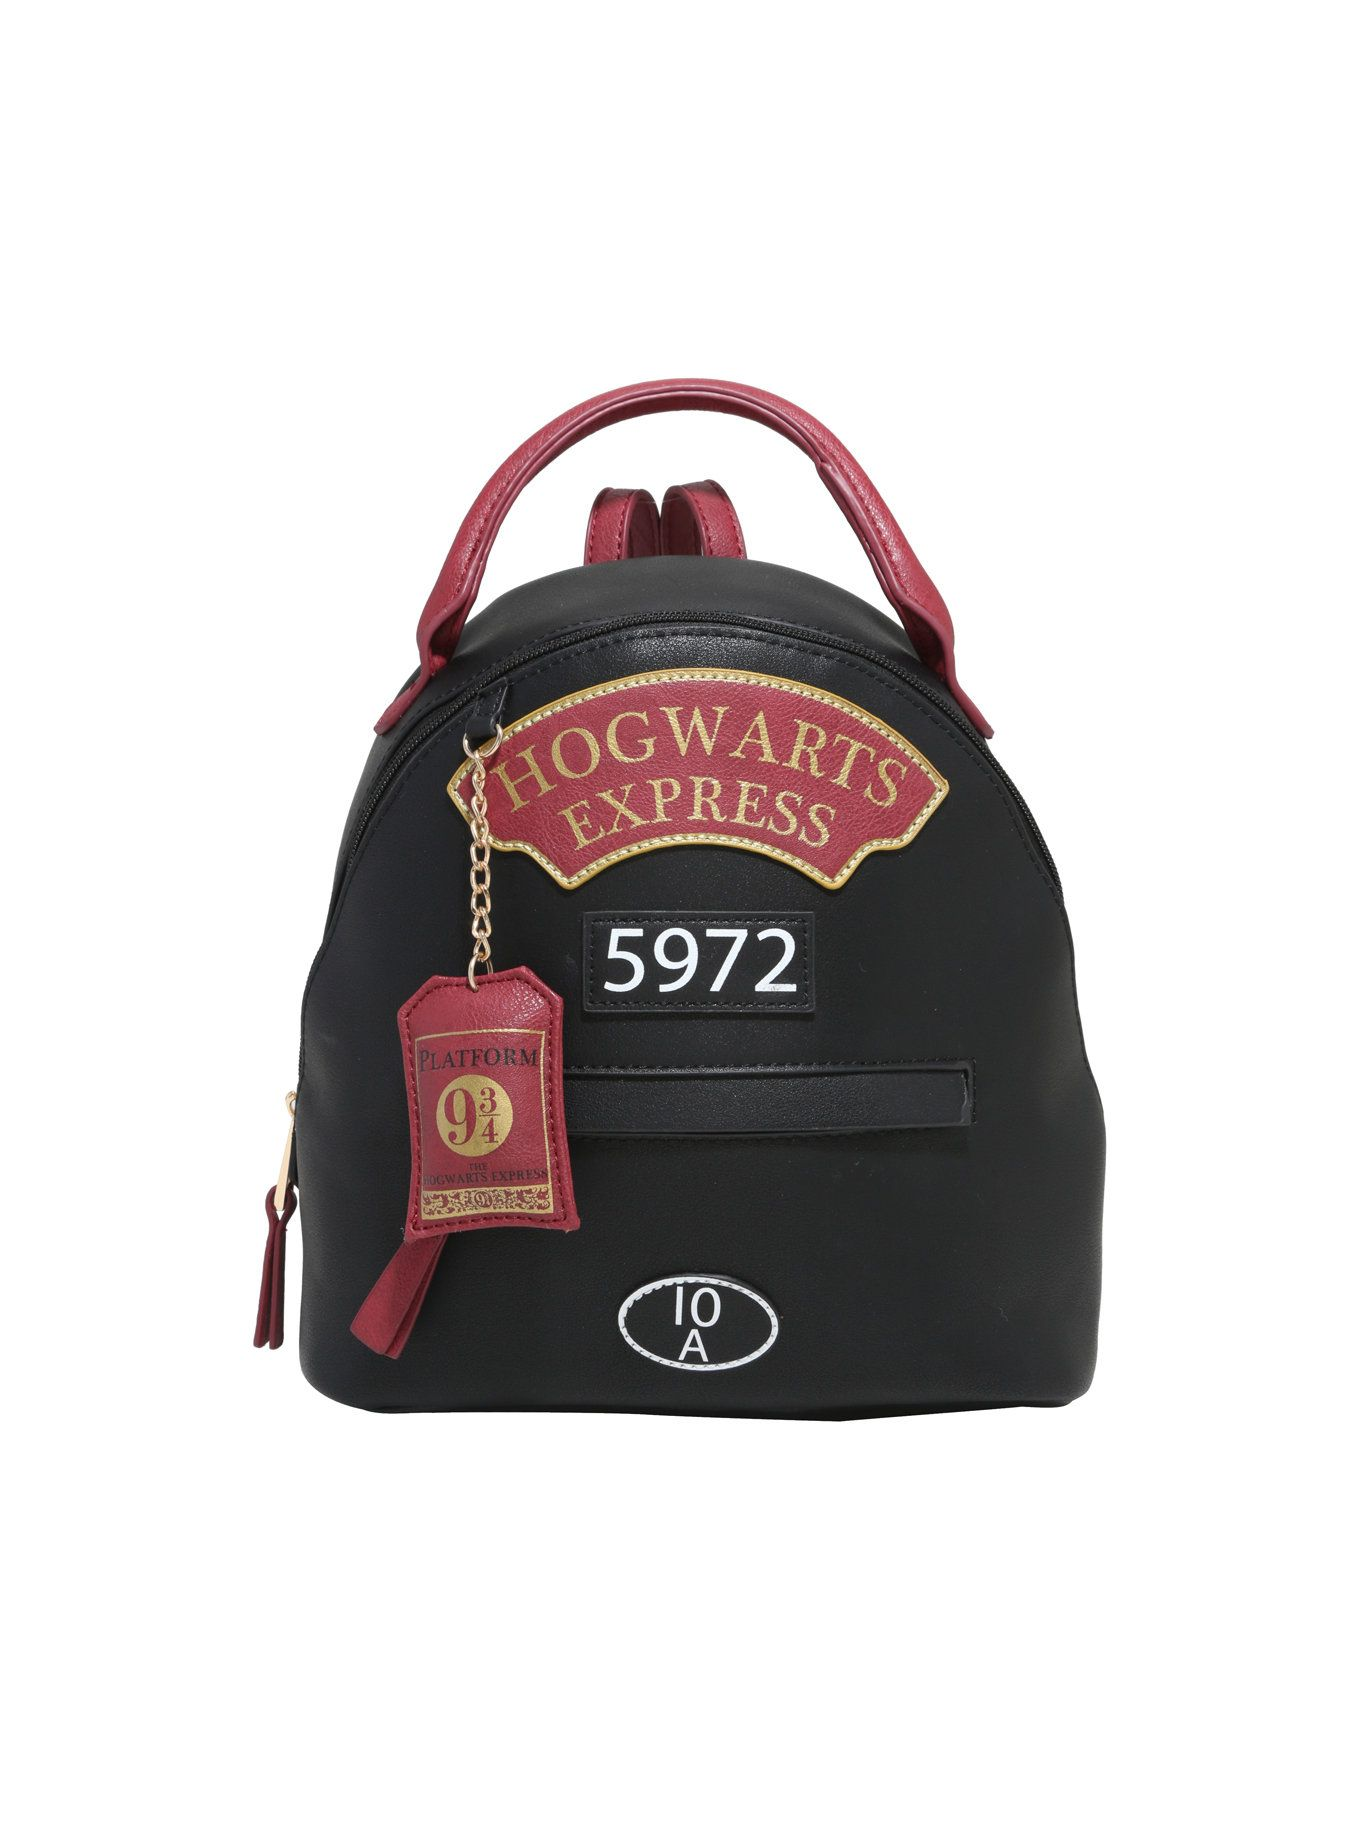 cd48beac79 Harry Potter Hogwarts Express Mini Backpack